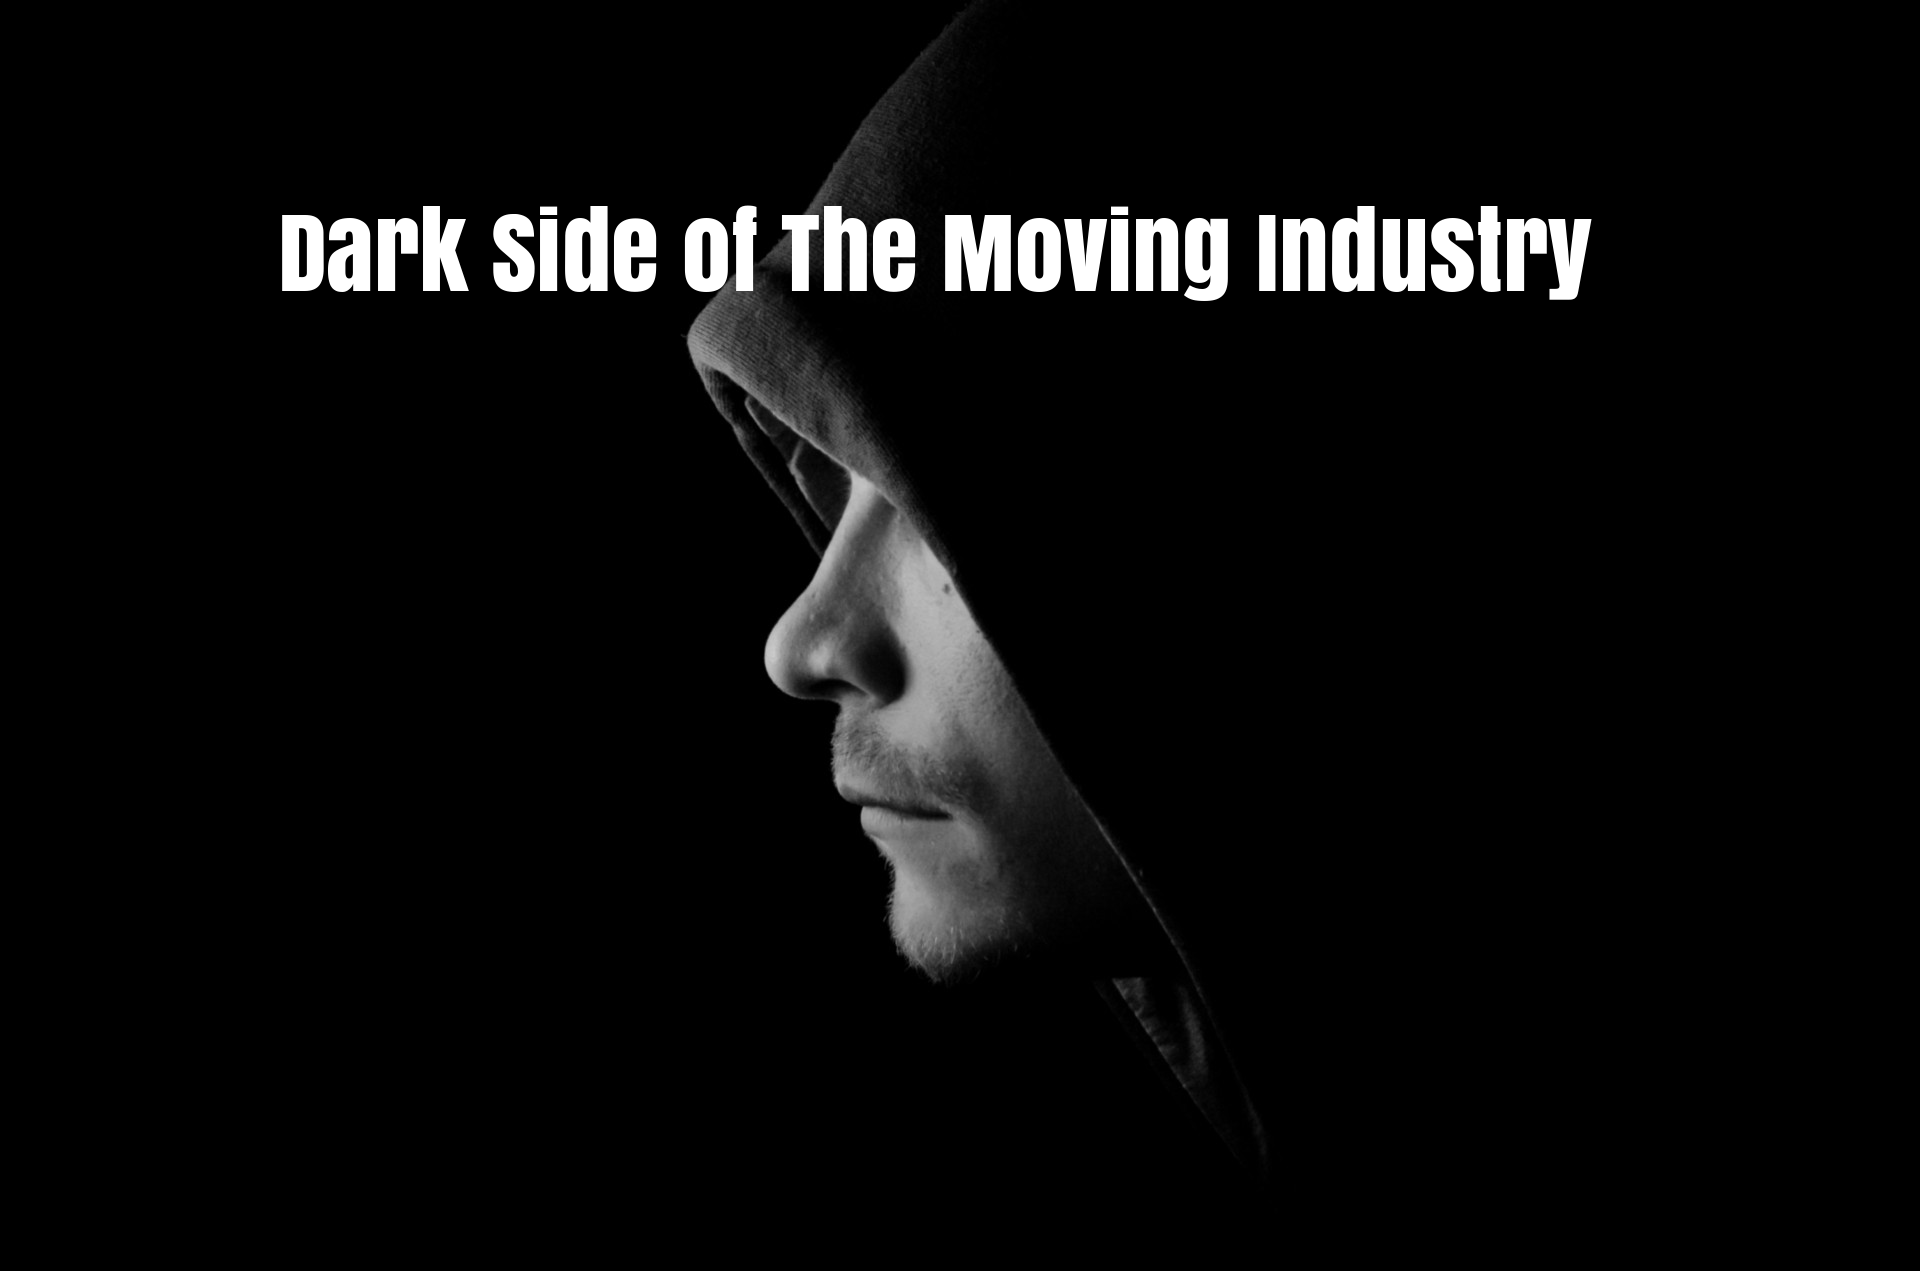 The dark side of the moving industry